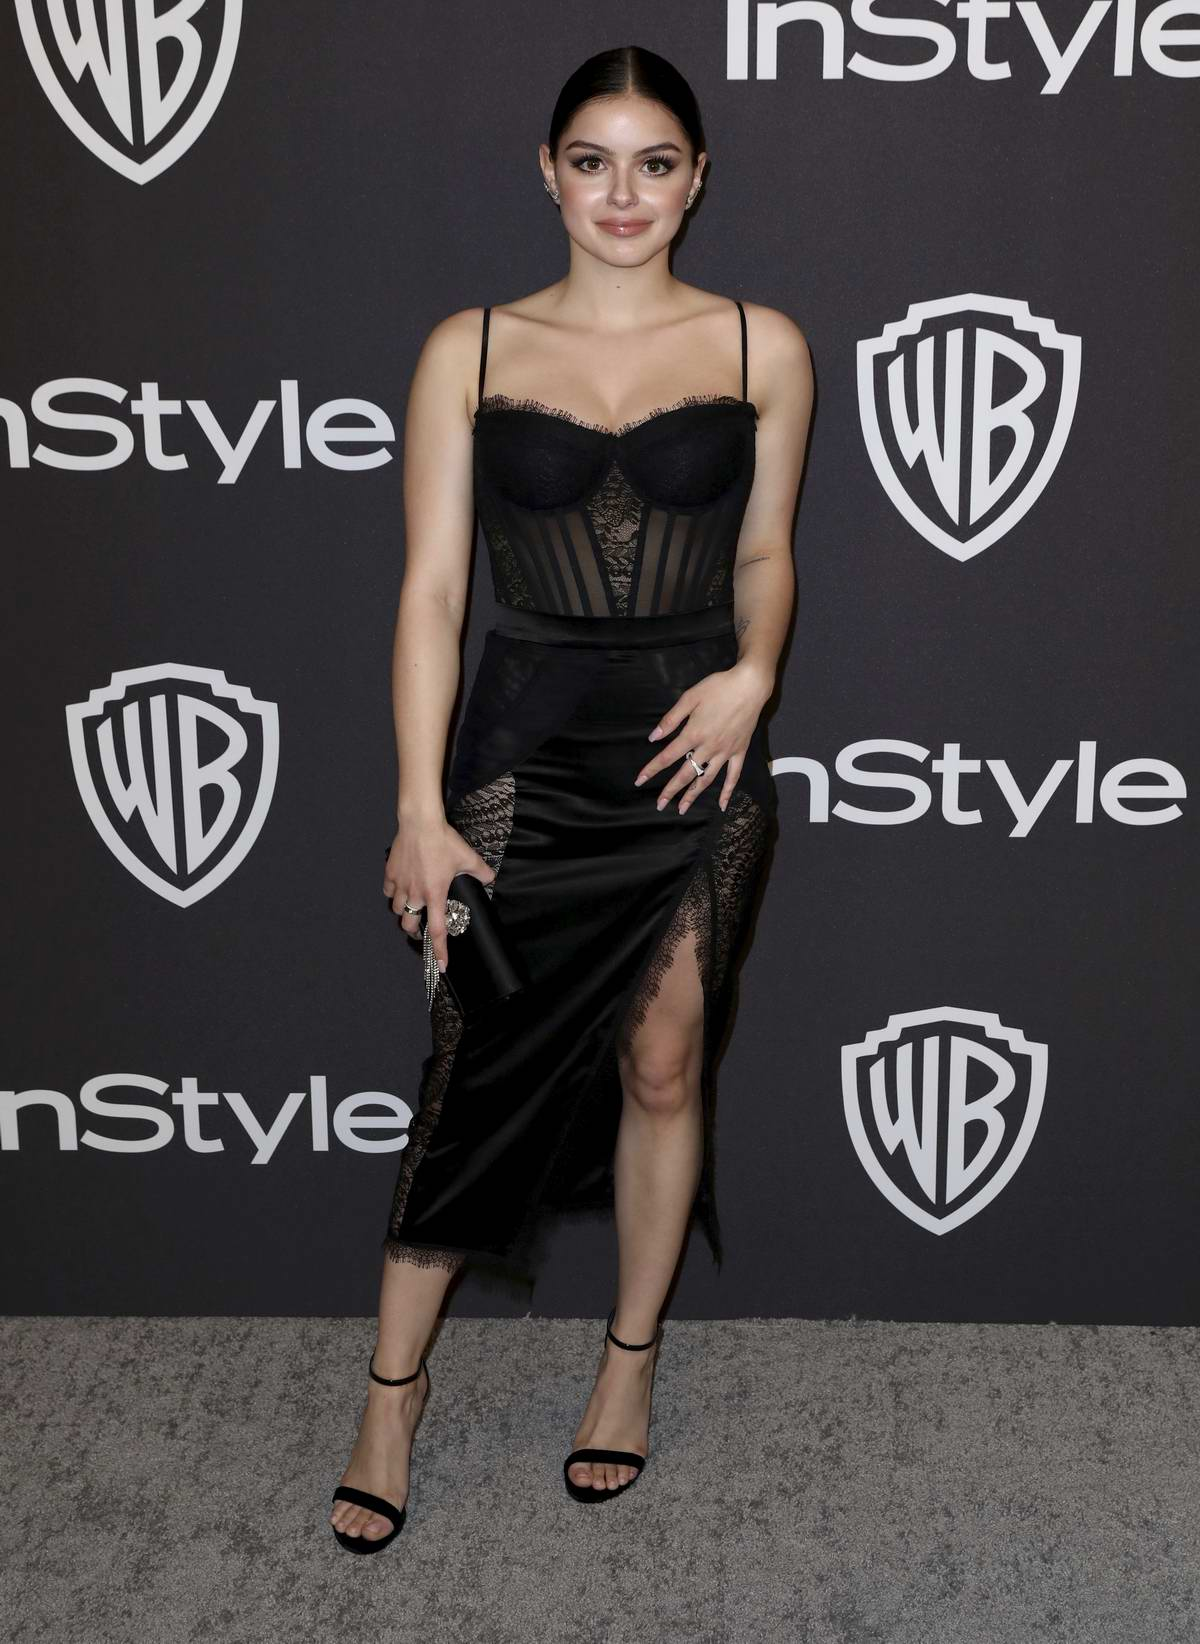 Ariel Winter attends InStyle and Warner Bros Golden Globe After Party 2019 at Beverly Hilton Hotel in Beverly Hills, California